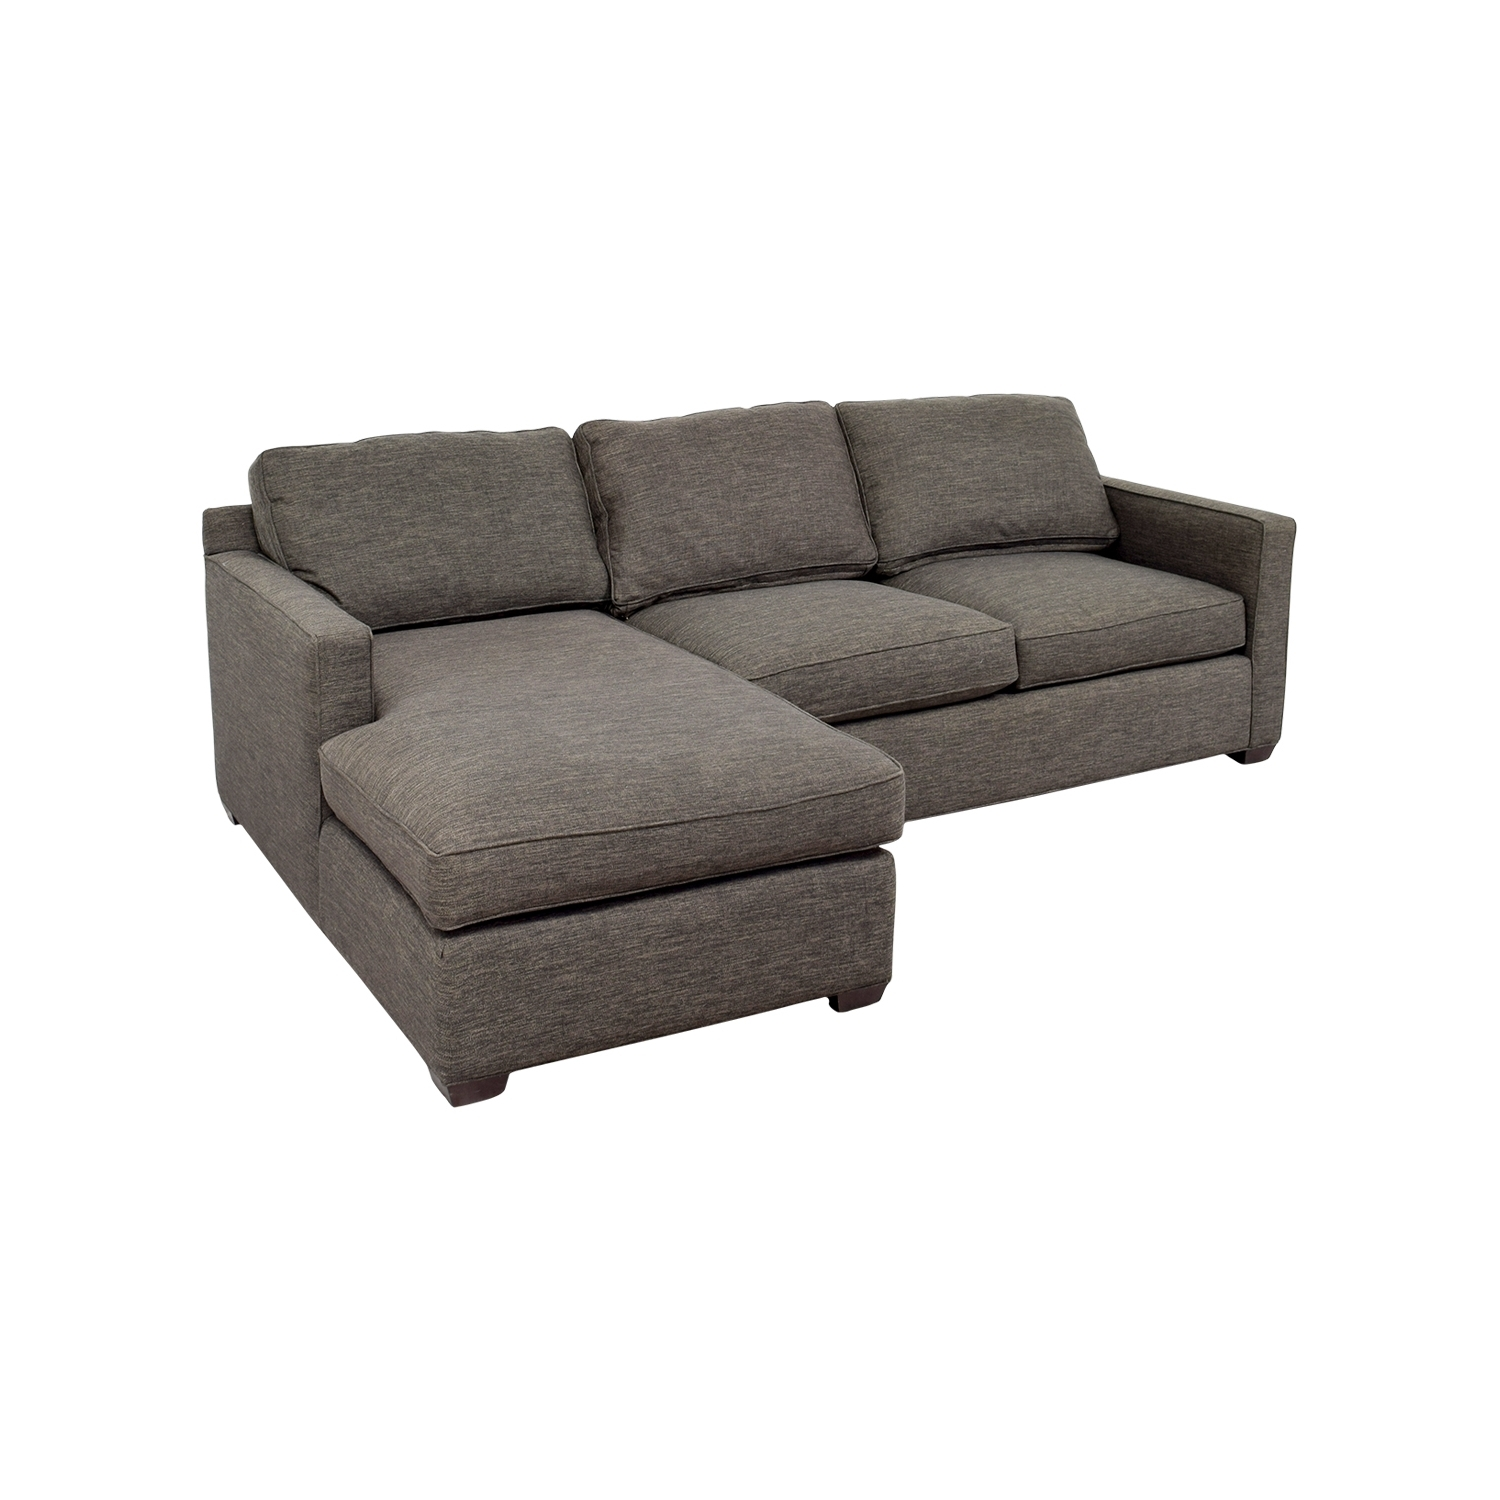 [%63% Off – Crate And Barrel Crate & Barrel Davis Grey Chaise Regarding Famous Grey Chaise Sectionals|Grey Chaise Sectionals With Regard To Preferred 63% Off – Crate And Barrel Crate & Barrel Davis Grey Chaise|Newest Grey Chaise Sectionals Regarding 63% Off – Crate And Barrel Crate & Barrel Davis Grey Chaise|Best And Newest 63% Off – Crate And Barrel Crate & Barrel Davis Grey Chaise Inside Grey Chaise Sectionals%] (View 1 of 15)